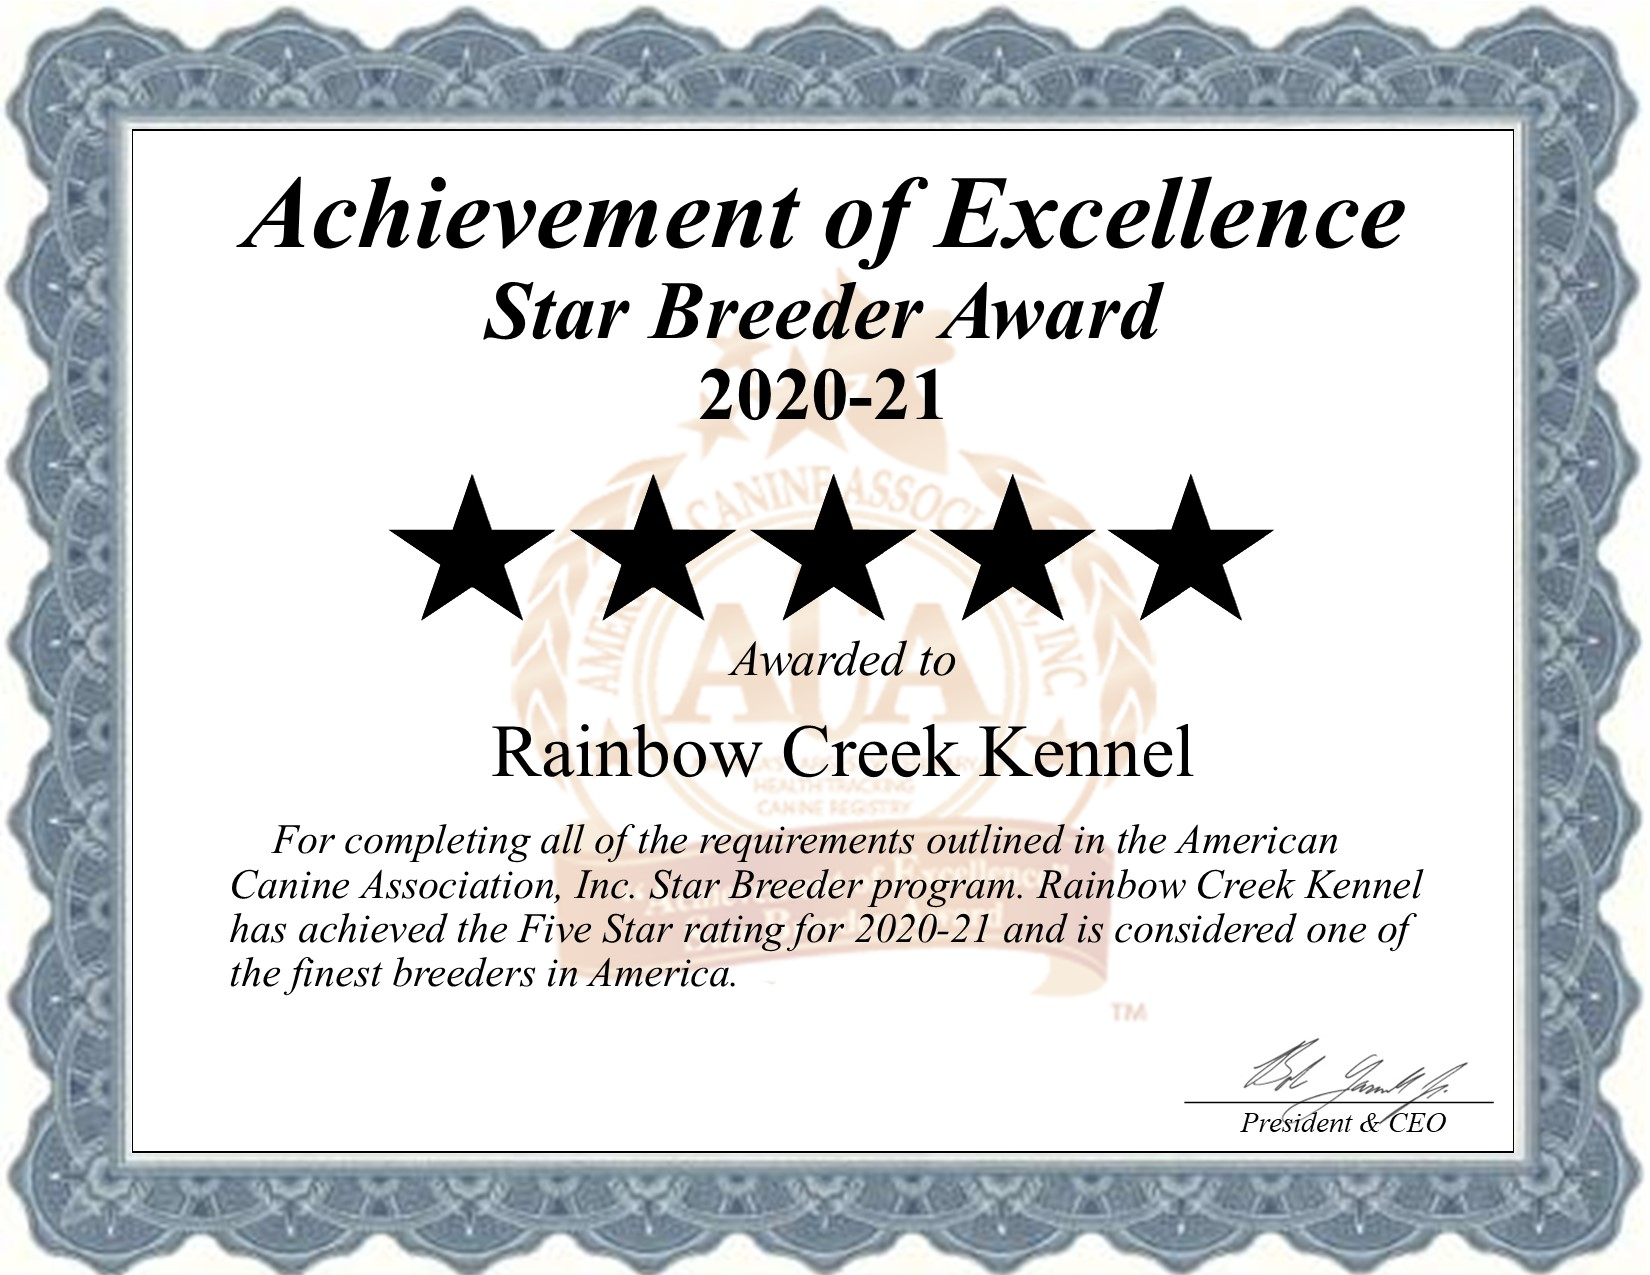 Rainbow, Creek, Kennels, dog, breeder, star, certificate, Rainbow-Creek-Kennels, South, Butler, NY, New, York, puppy, dog, kennel, mill, puppymill, usda, 5-star, aca, ica, registered, yorkie, pug, poodle, 21-A-0179, 21A0179